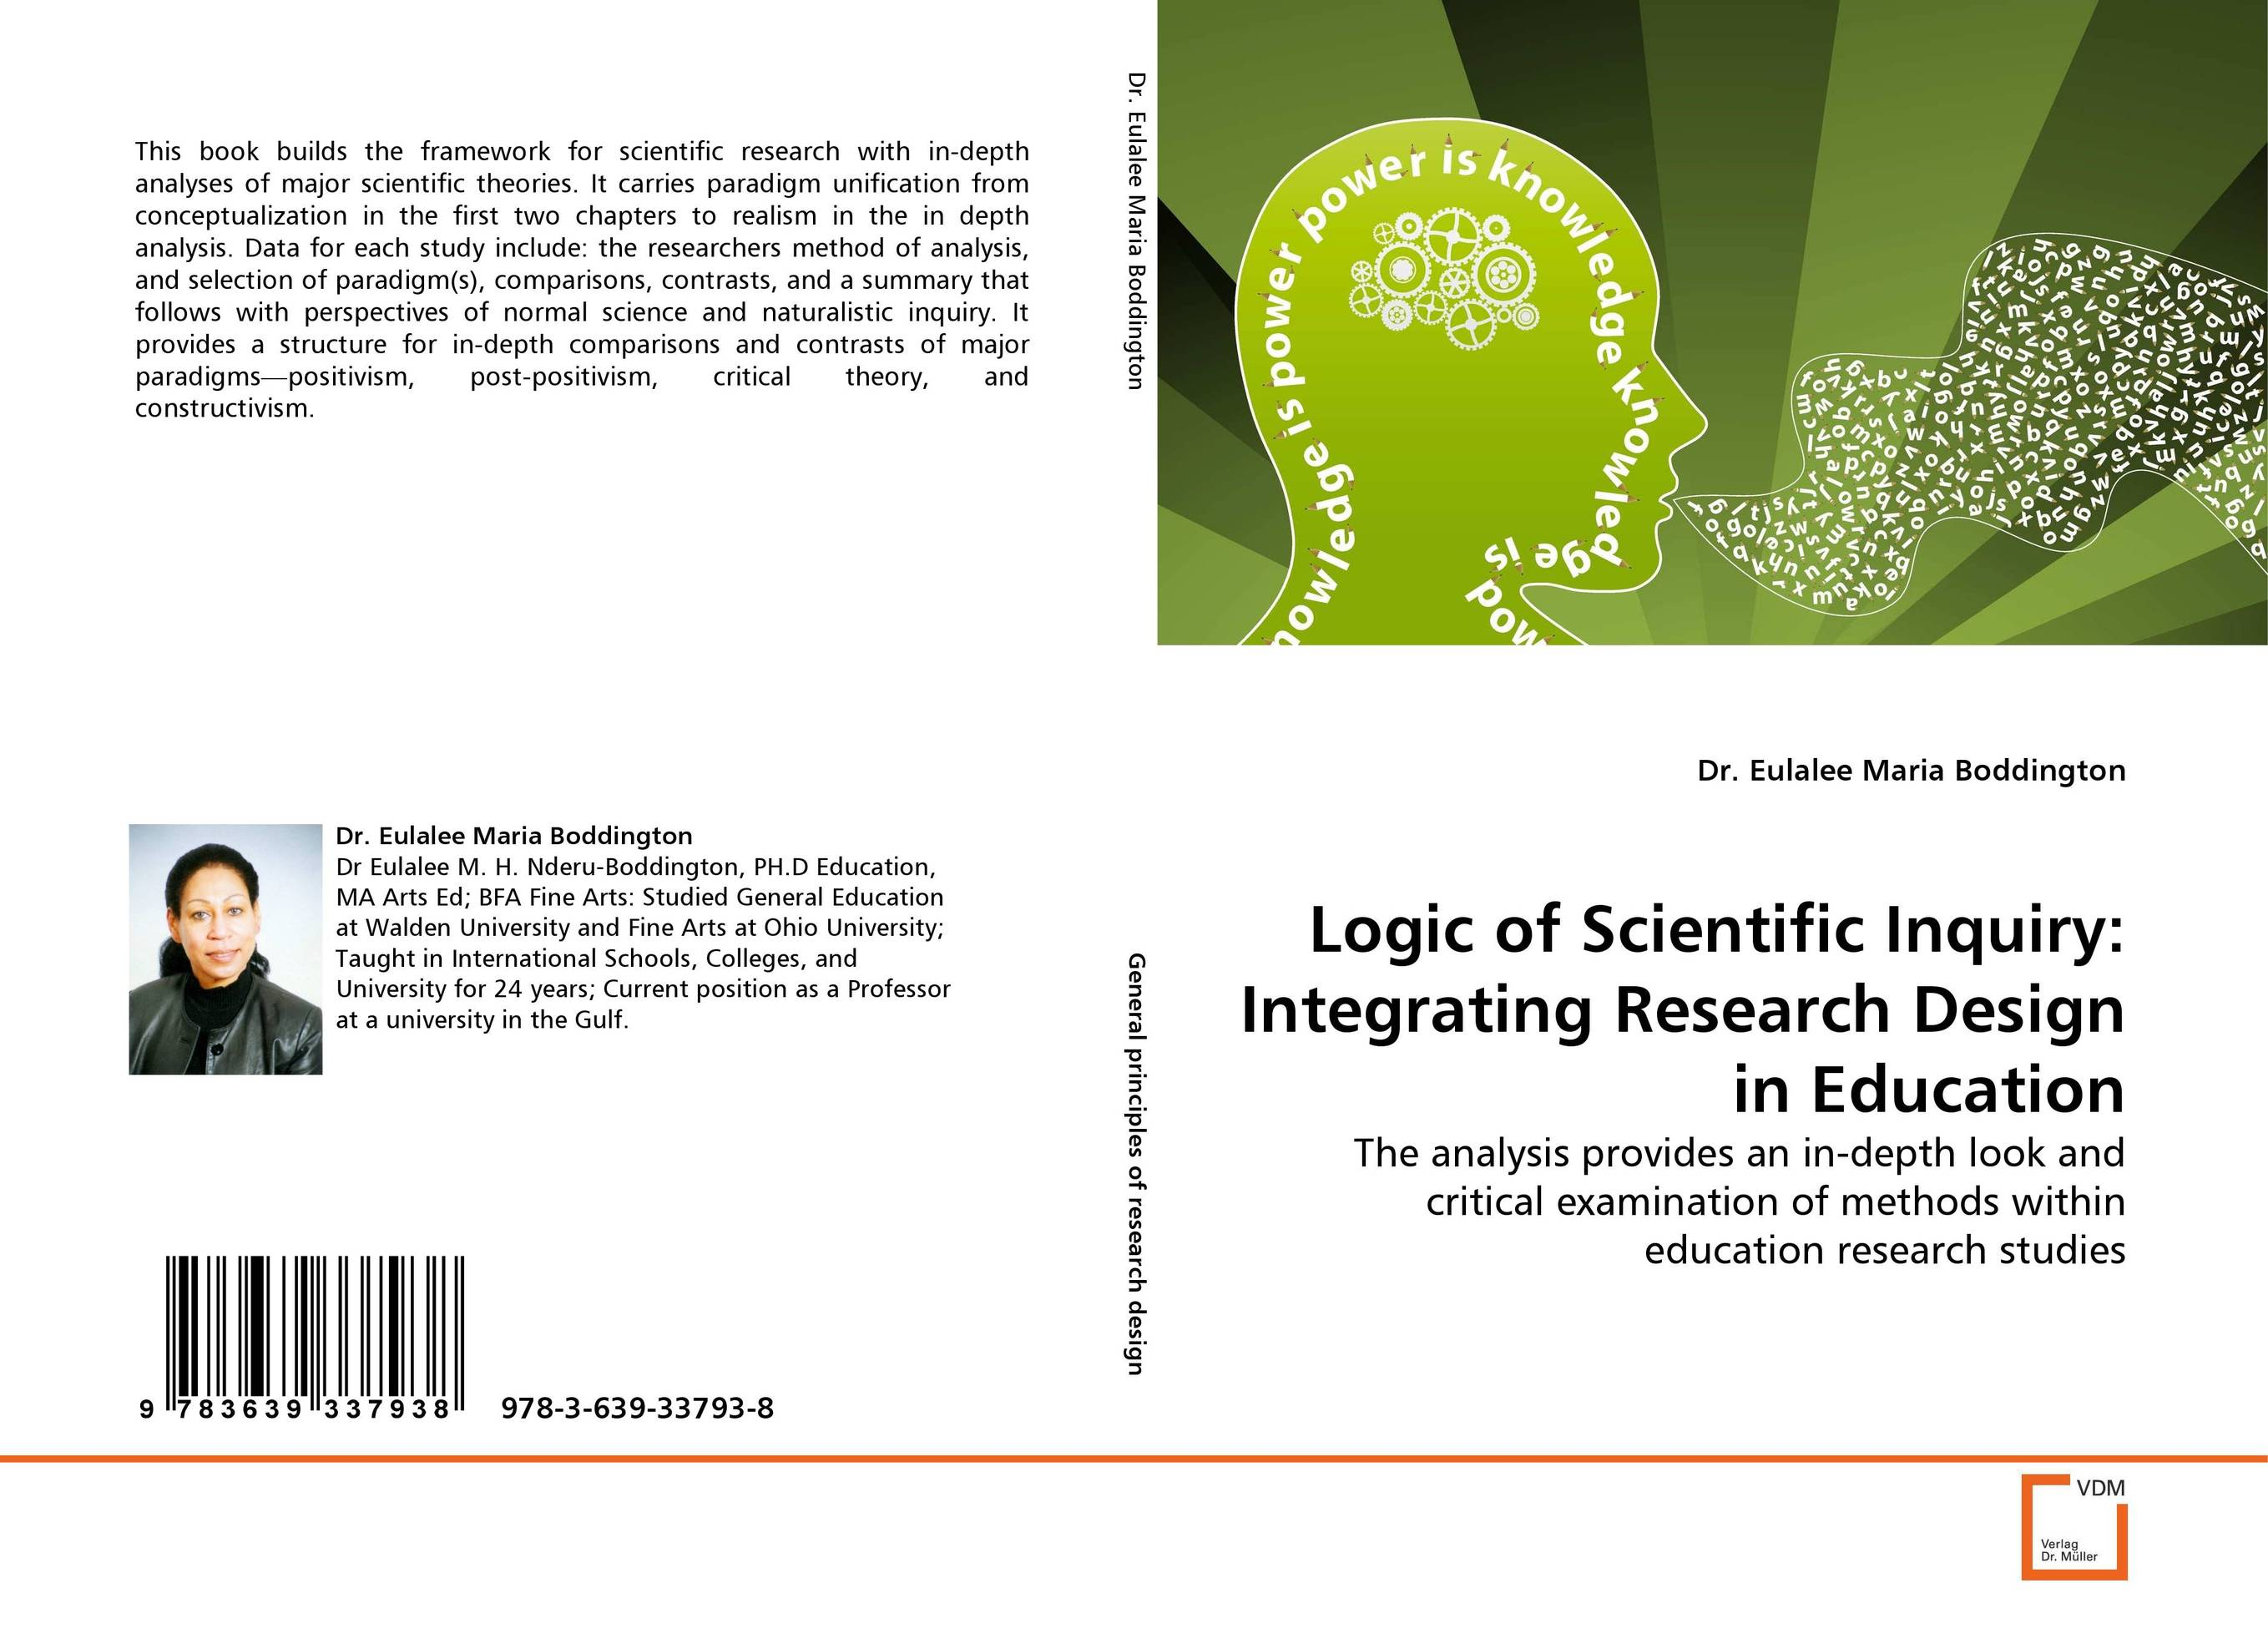 Logic of Scientific Inquiry: Integrating Research Design in Education scott pratt l logic inquiry argument and order